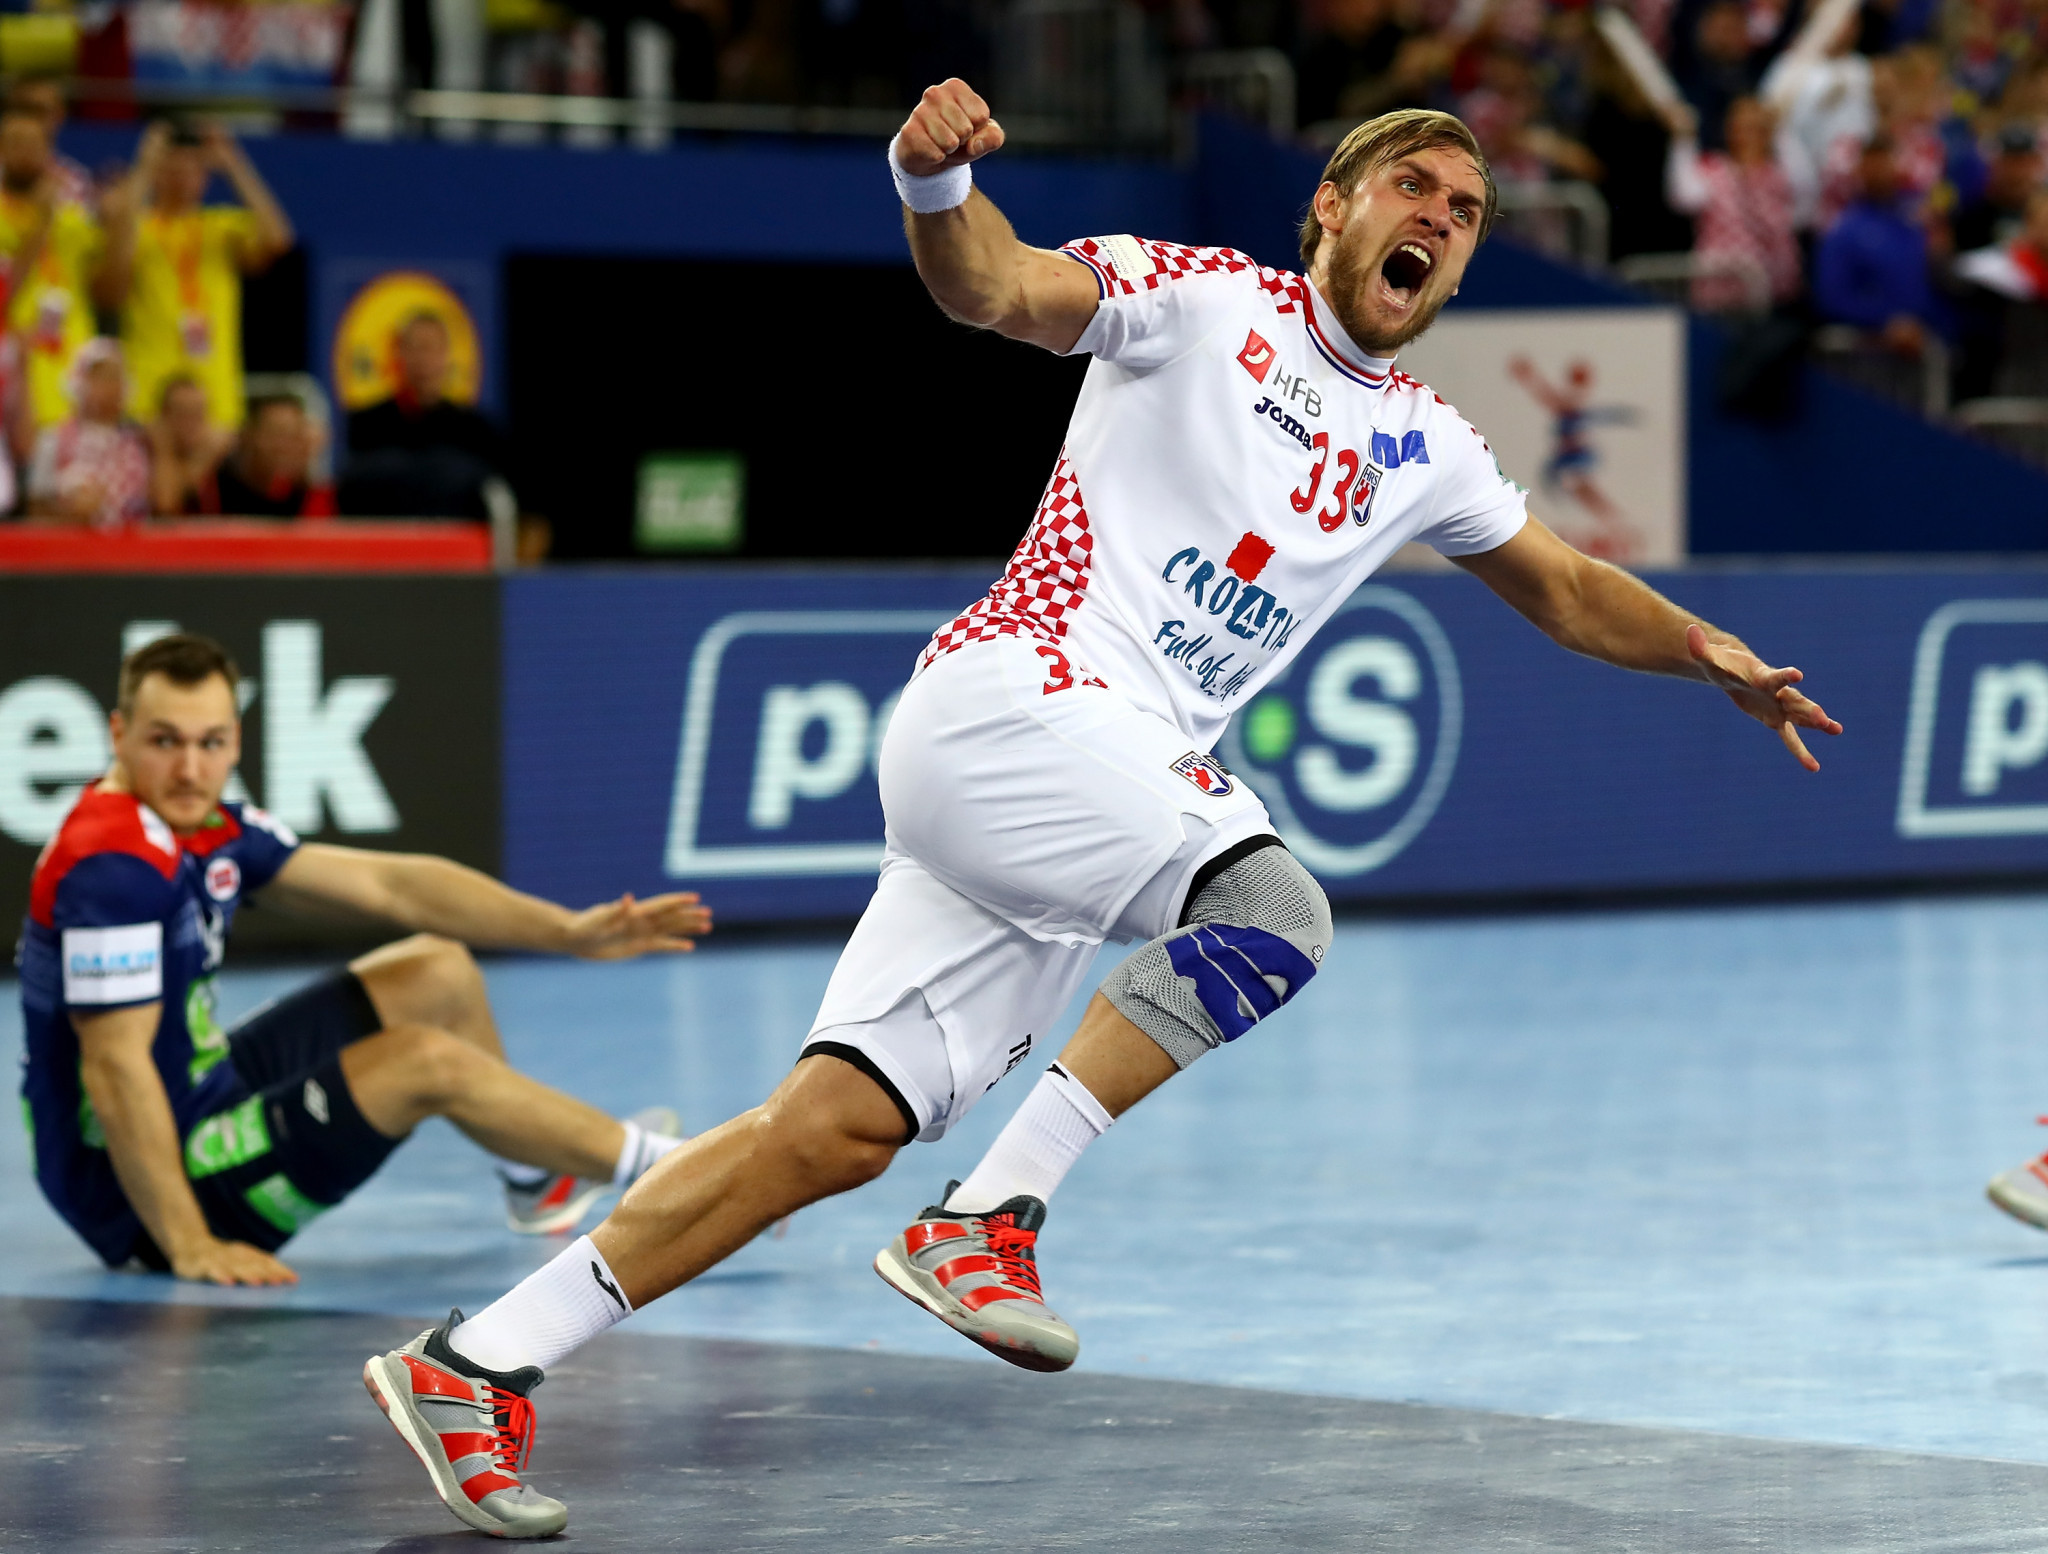 Hosts continue good form at 2018 European Men's Handball Championship